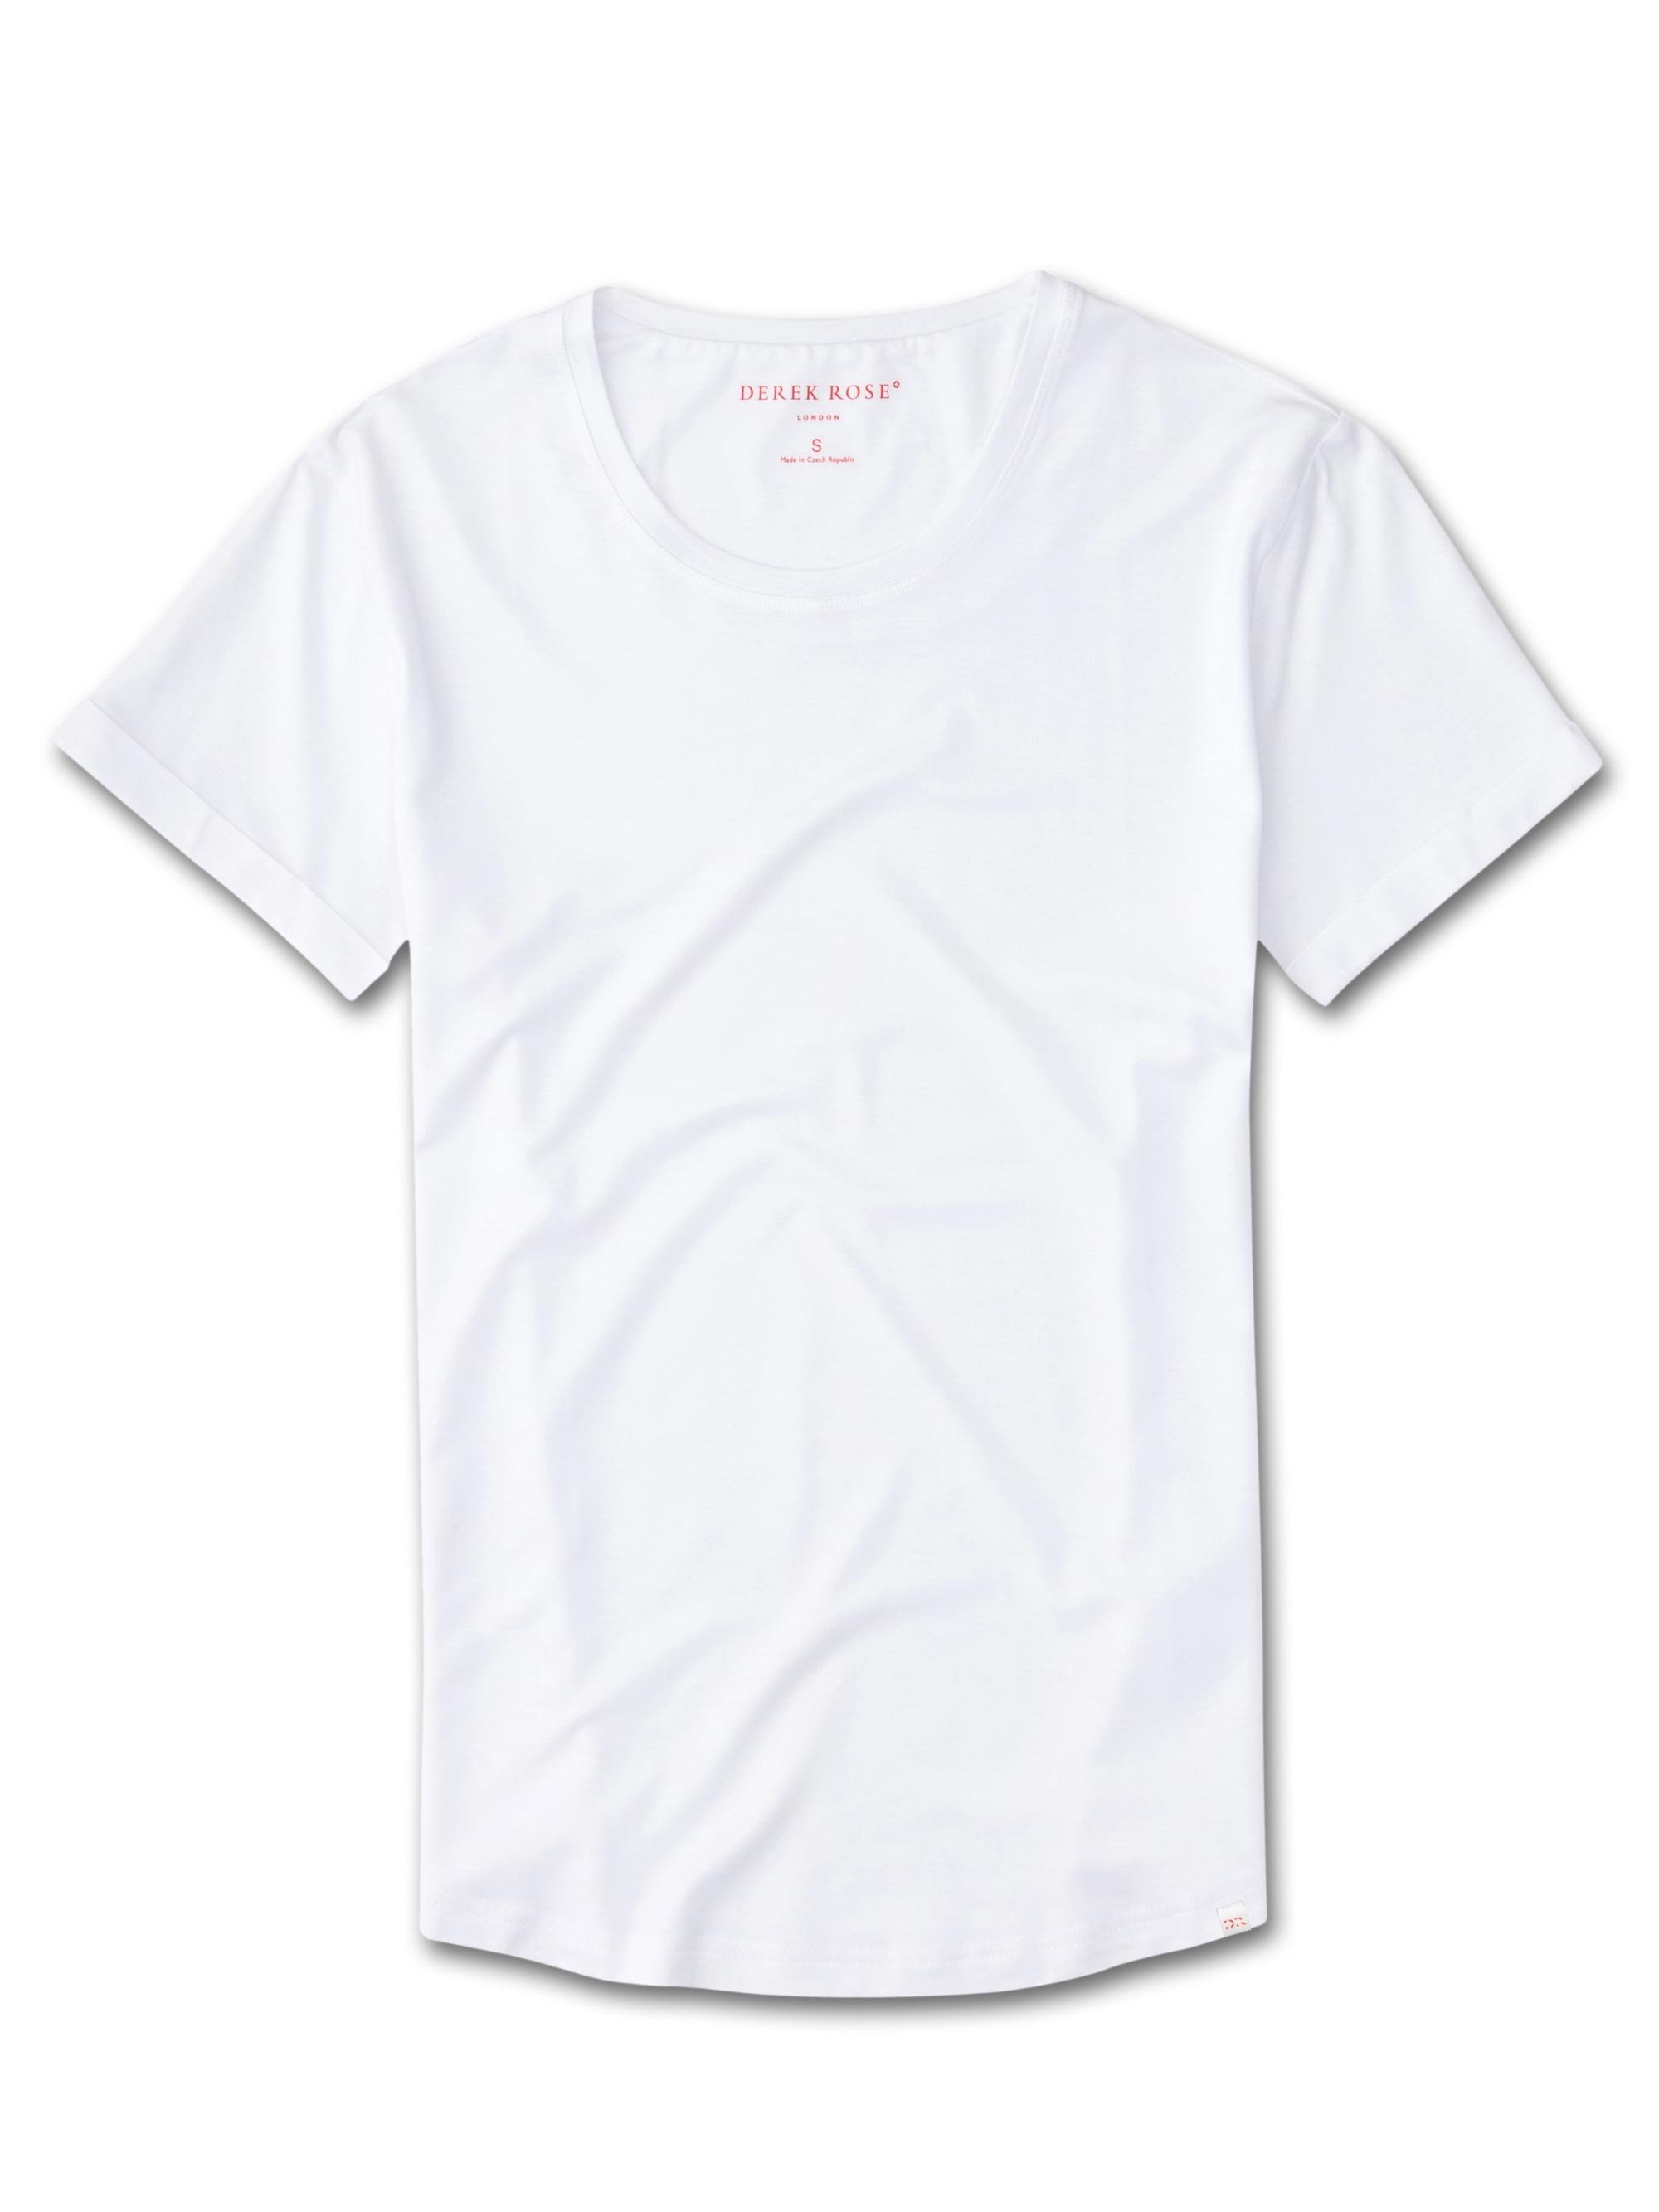 Women's Leisure T-Shirt Lara Micro Modal Stretch White